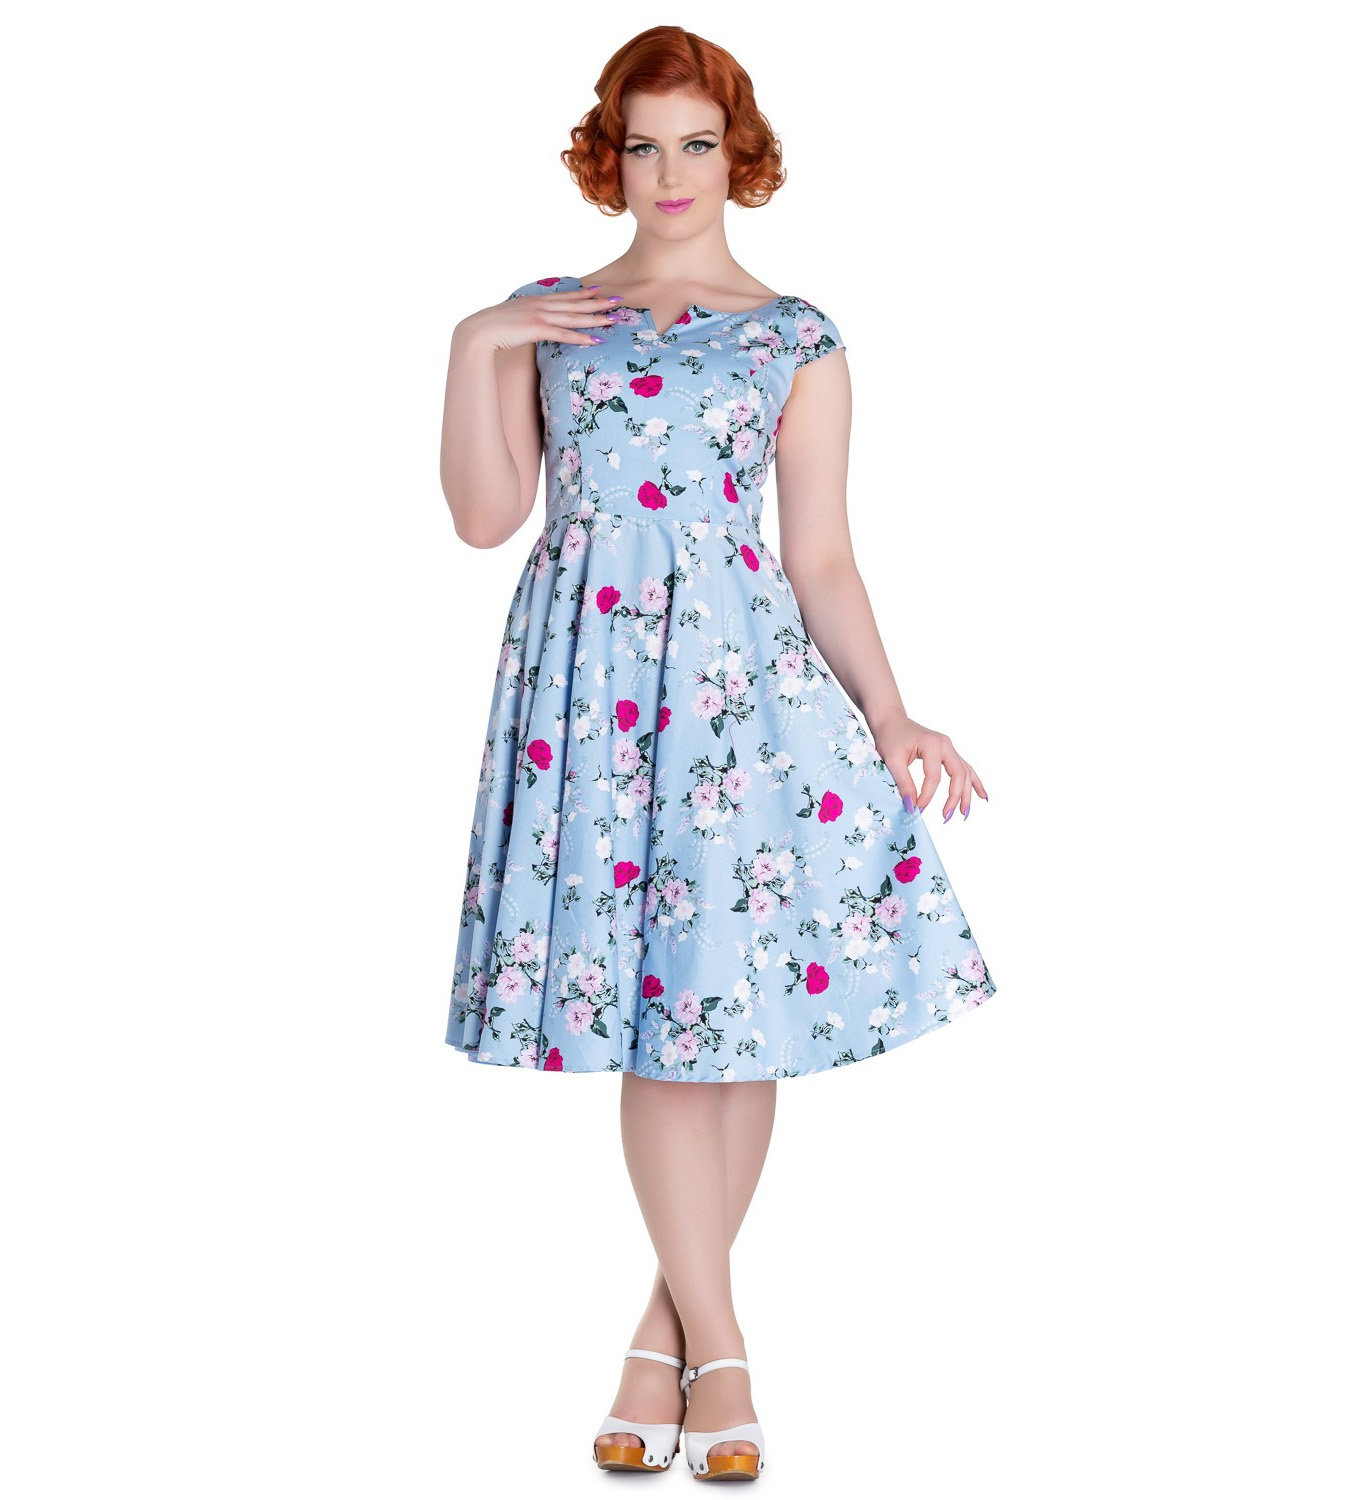 Hell-Bunny-50s-Dress-Floral-BELINDA-Rockabilly-Pin-Up-Vintage-Blue thumbnail 3